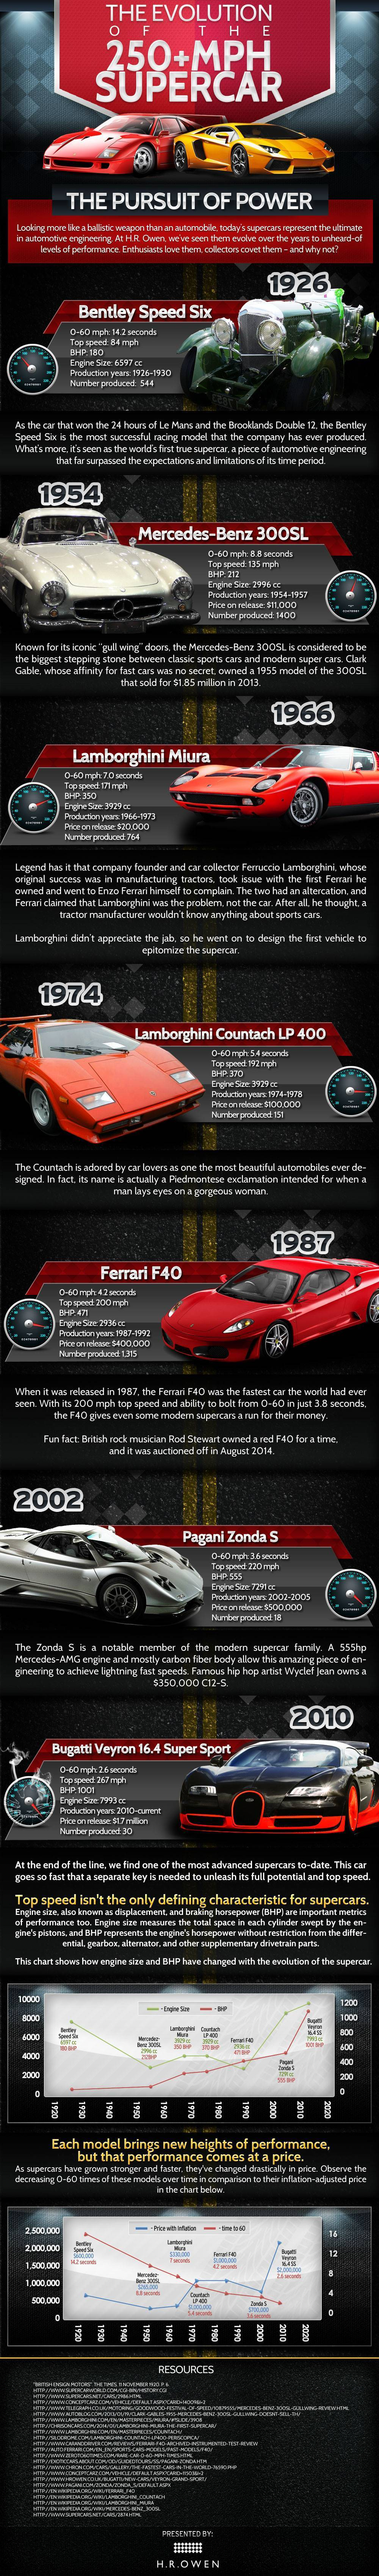 Evolution of the 200mph Supercar infographic